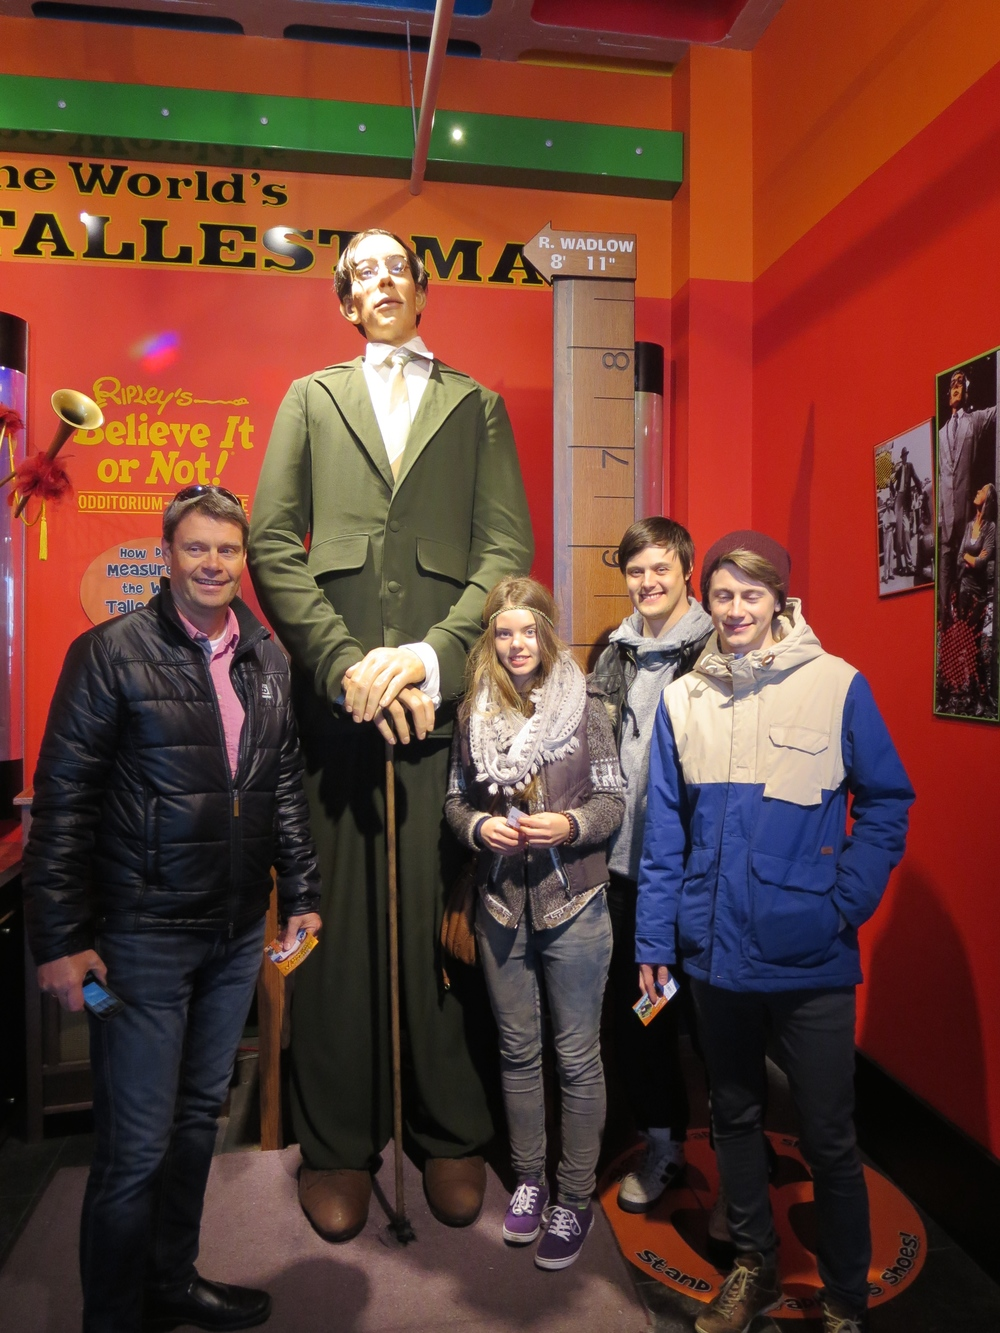 At Ripley´s museum we found the world´s largest man